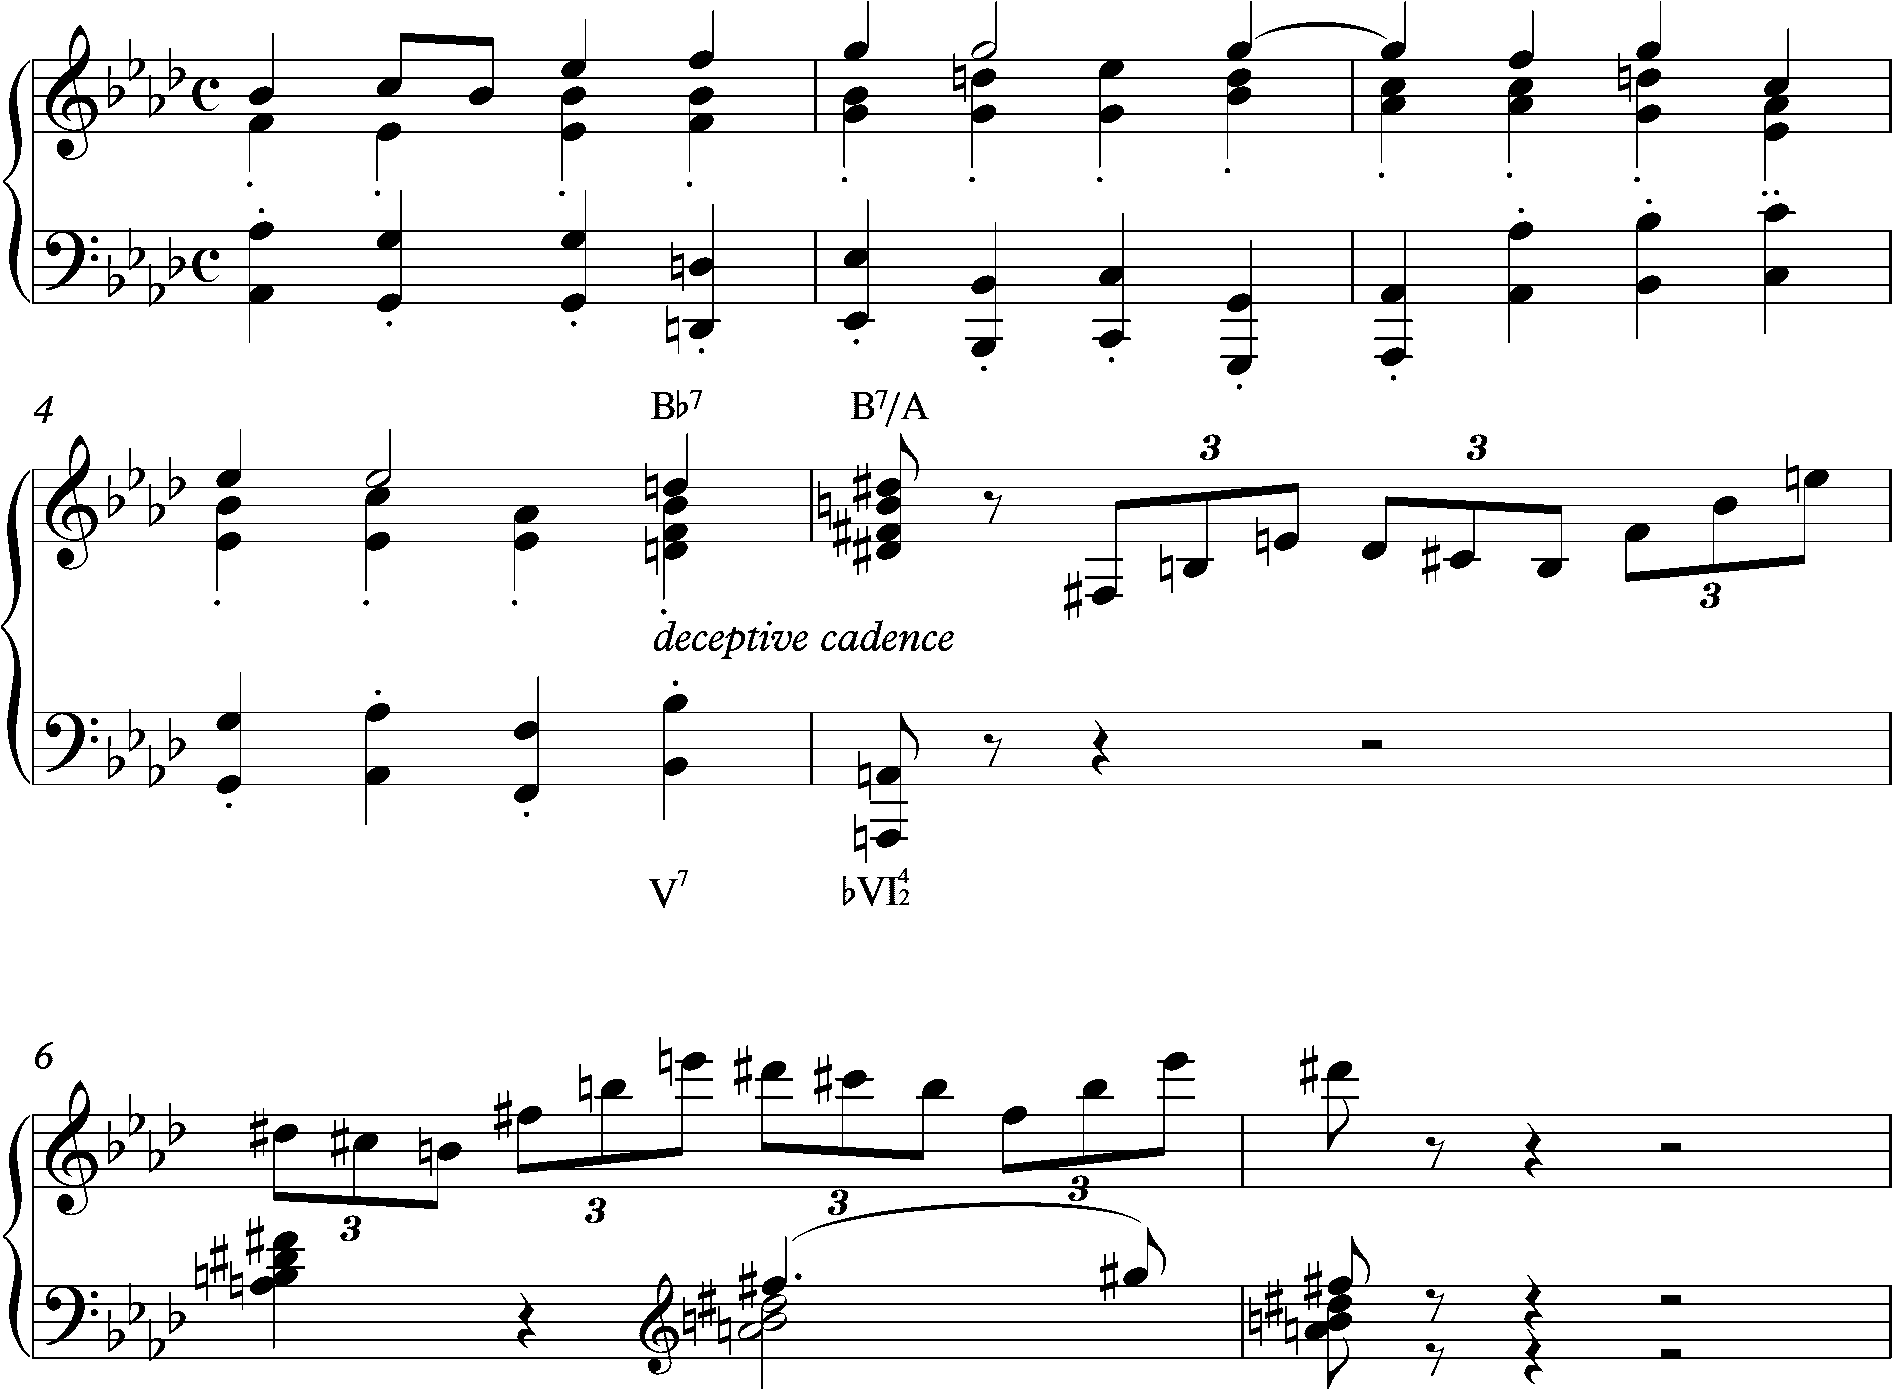 FileChopin Fantaisie in F minor, Op.20.png   Wikimedia Commons